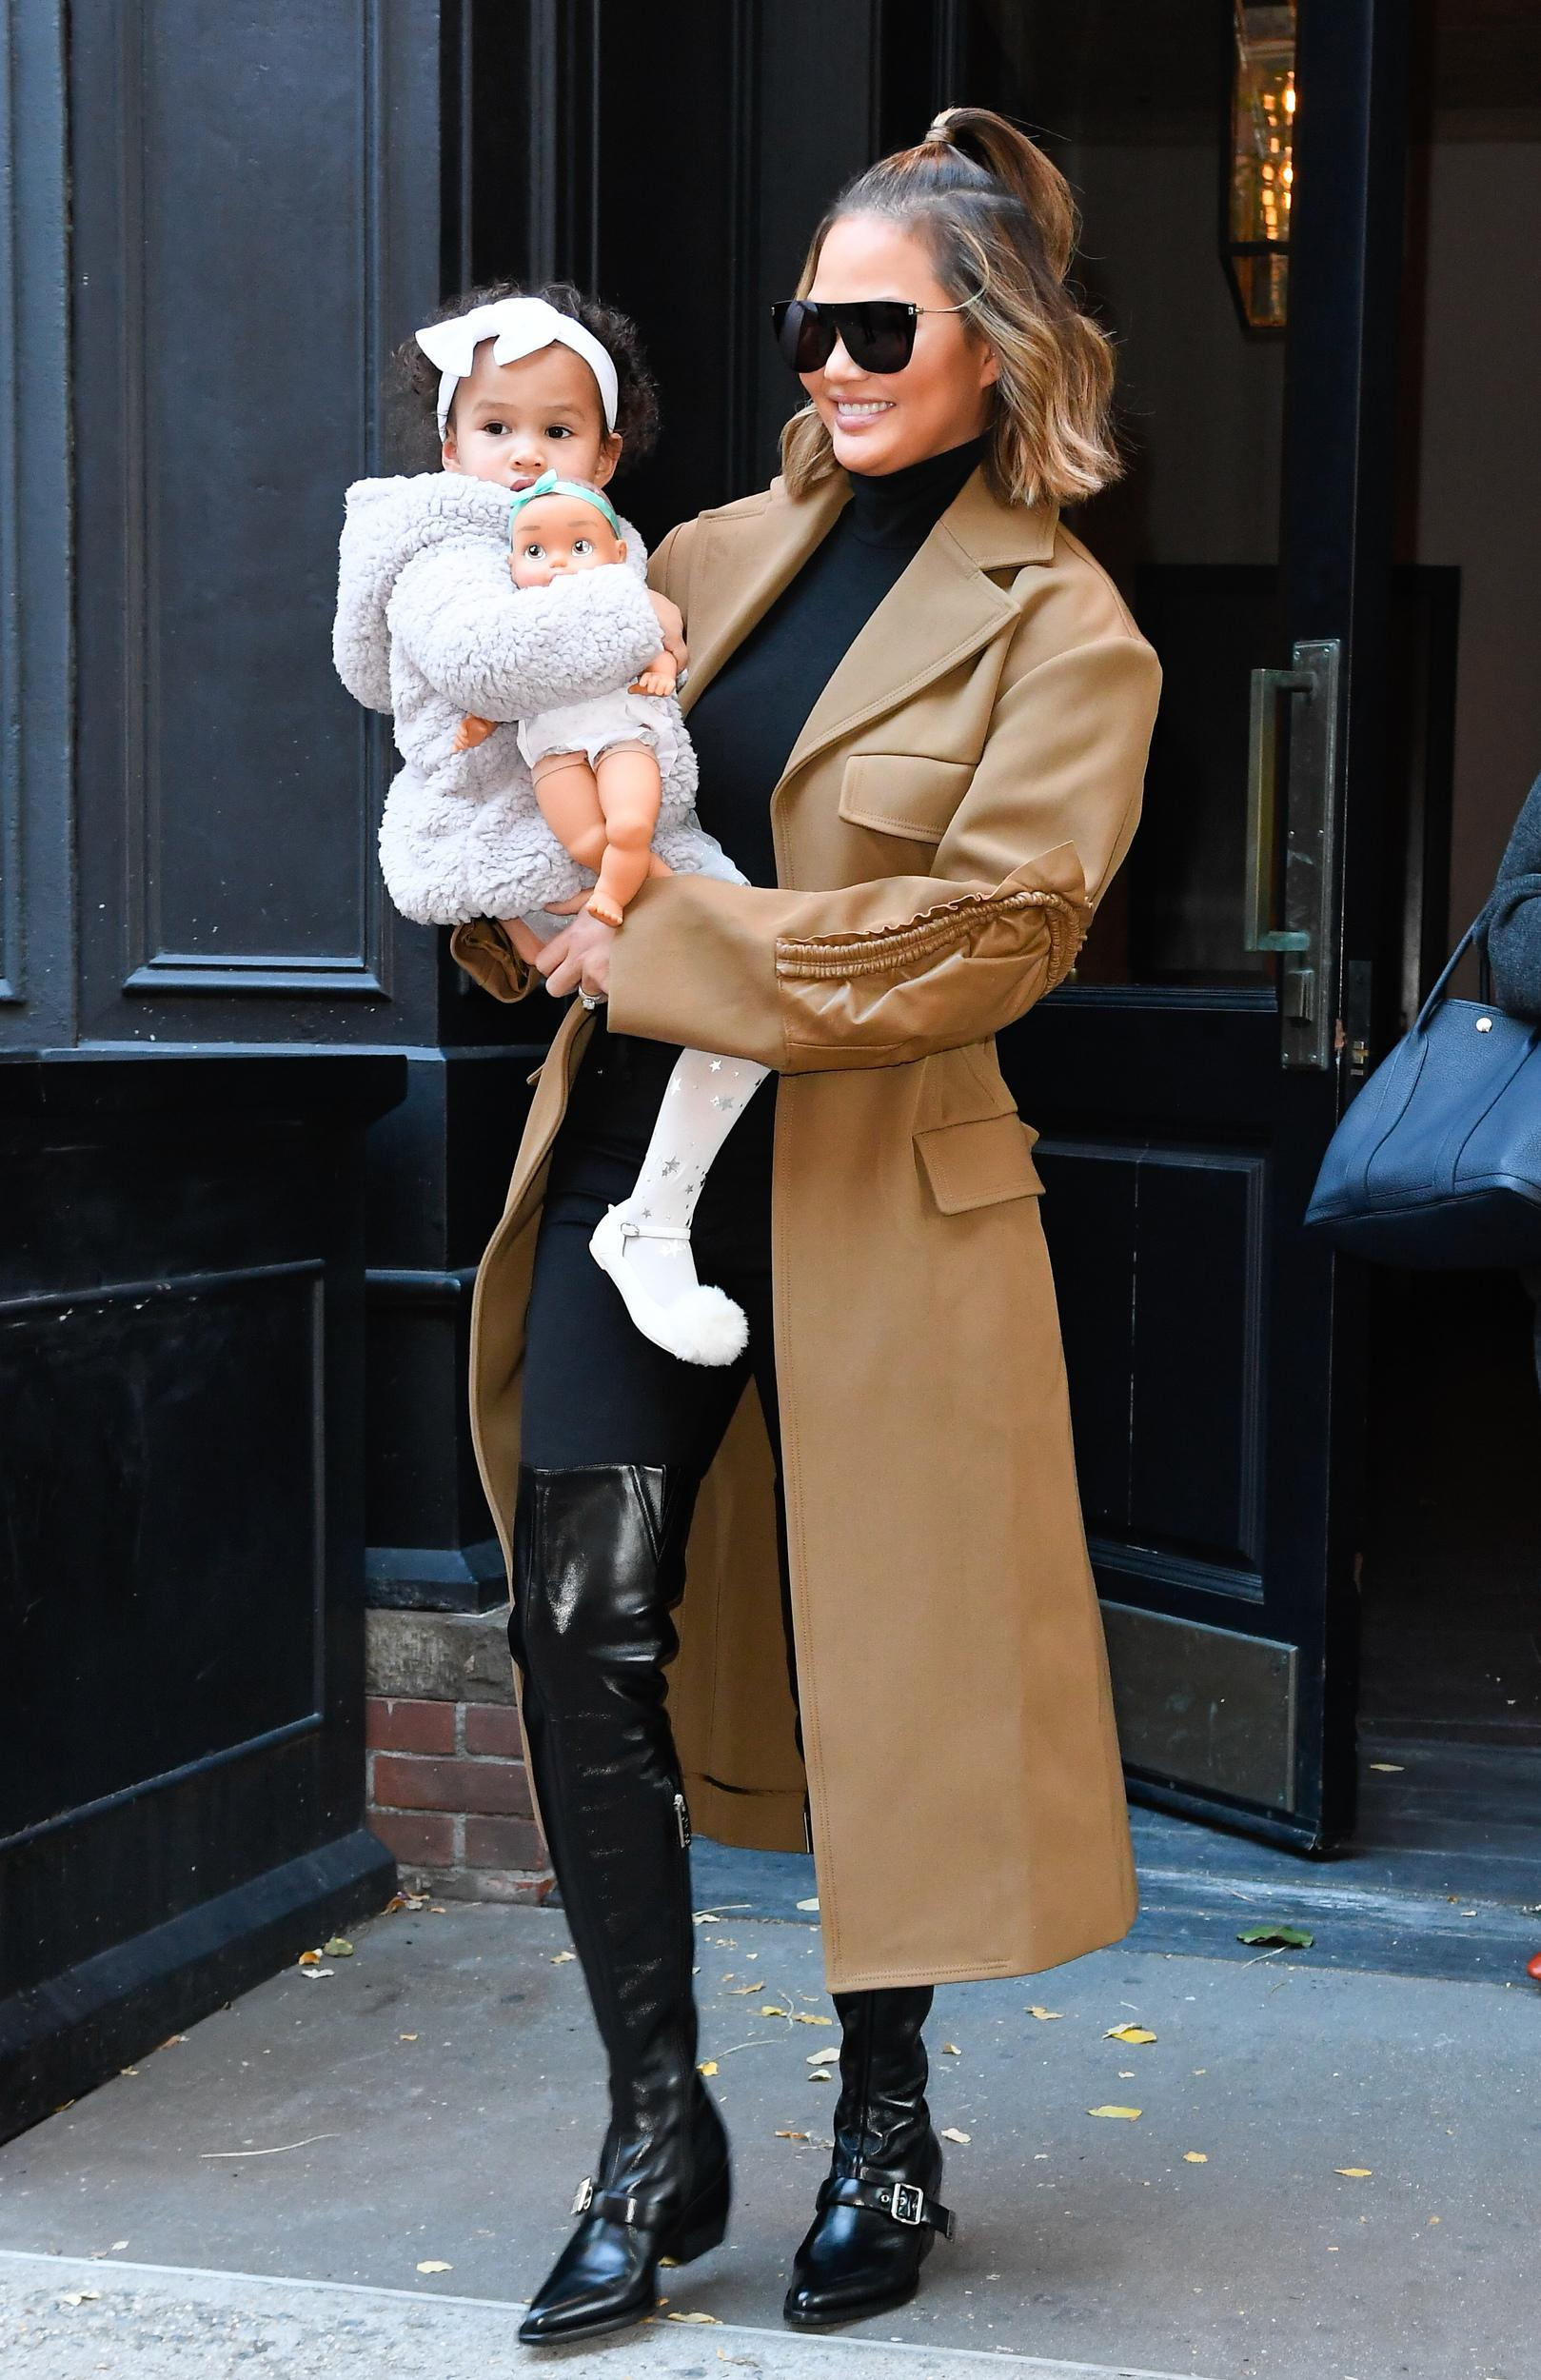 NEW YORK, NY - NOVEMBER 08:  Model Chrissy Teigen and her daughter Luna Legend are seen walking in soho on November 8, 2018 in New York City.  (Photo by Raymond Hall/GC Images)